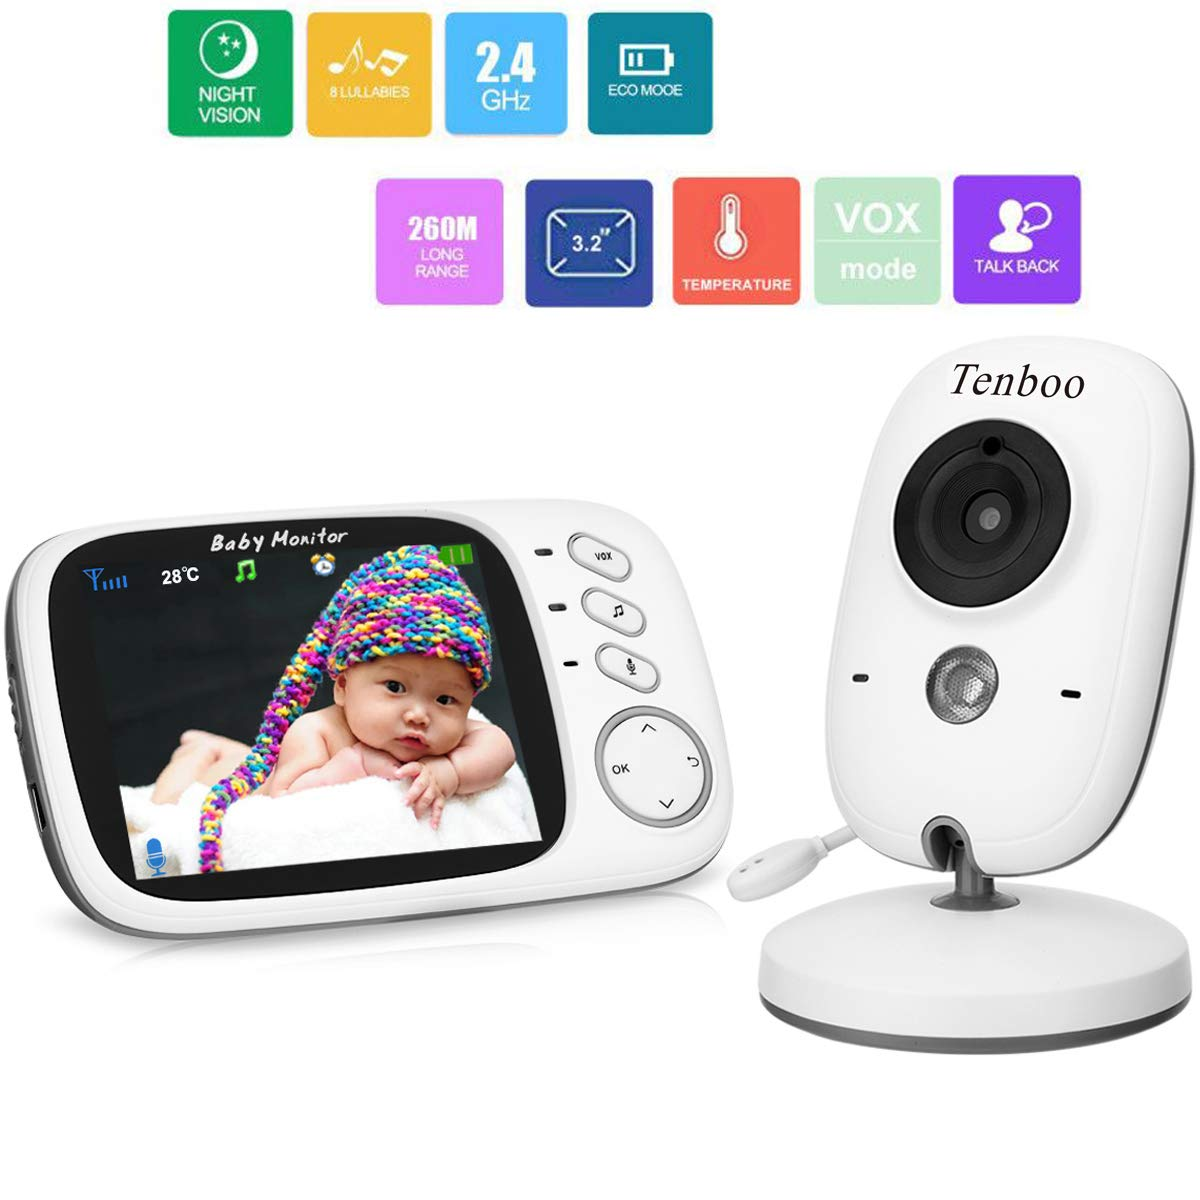 Baby Monitor with Camera Video Baby Monitor Wireless Tenboo 3.2